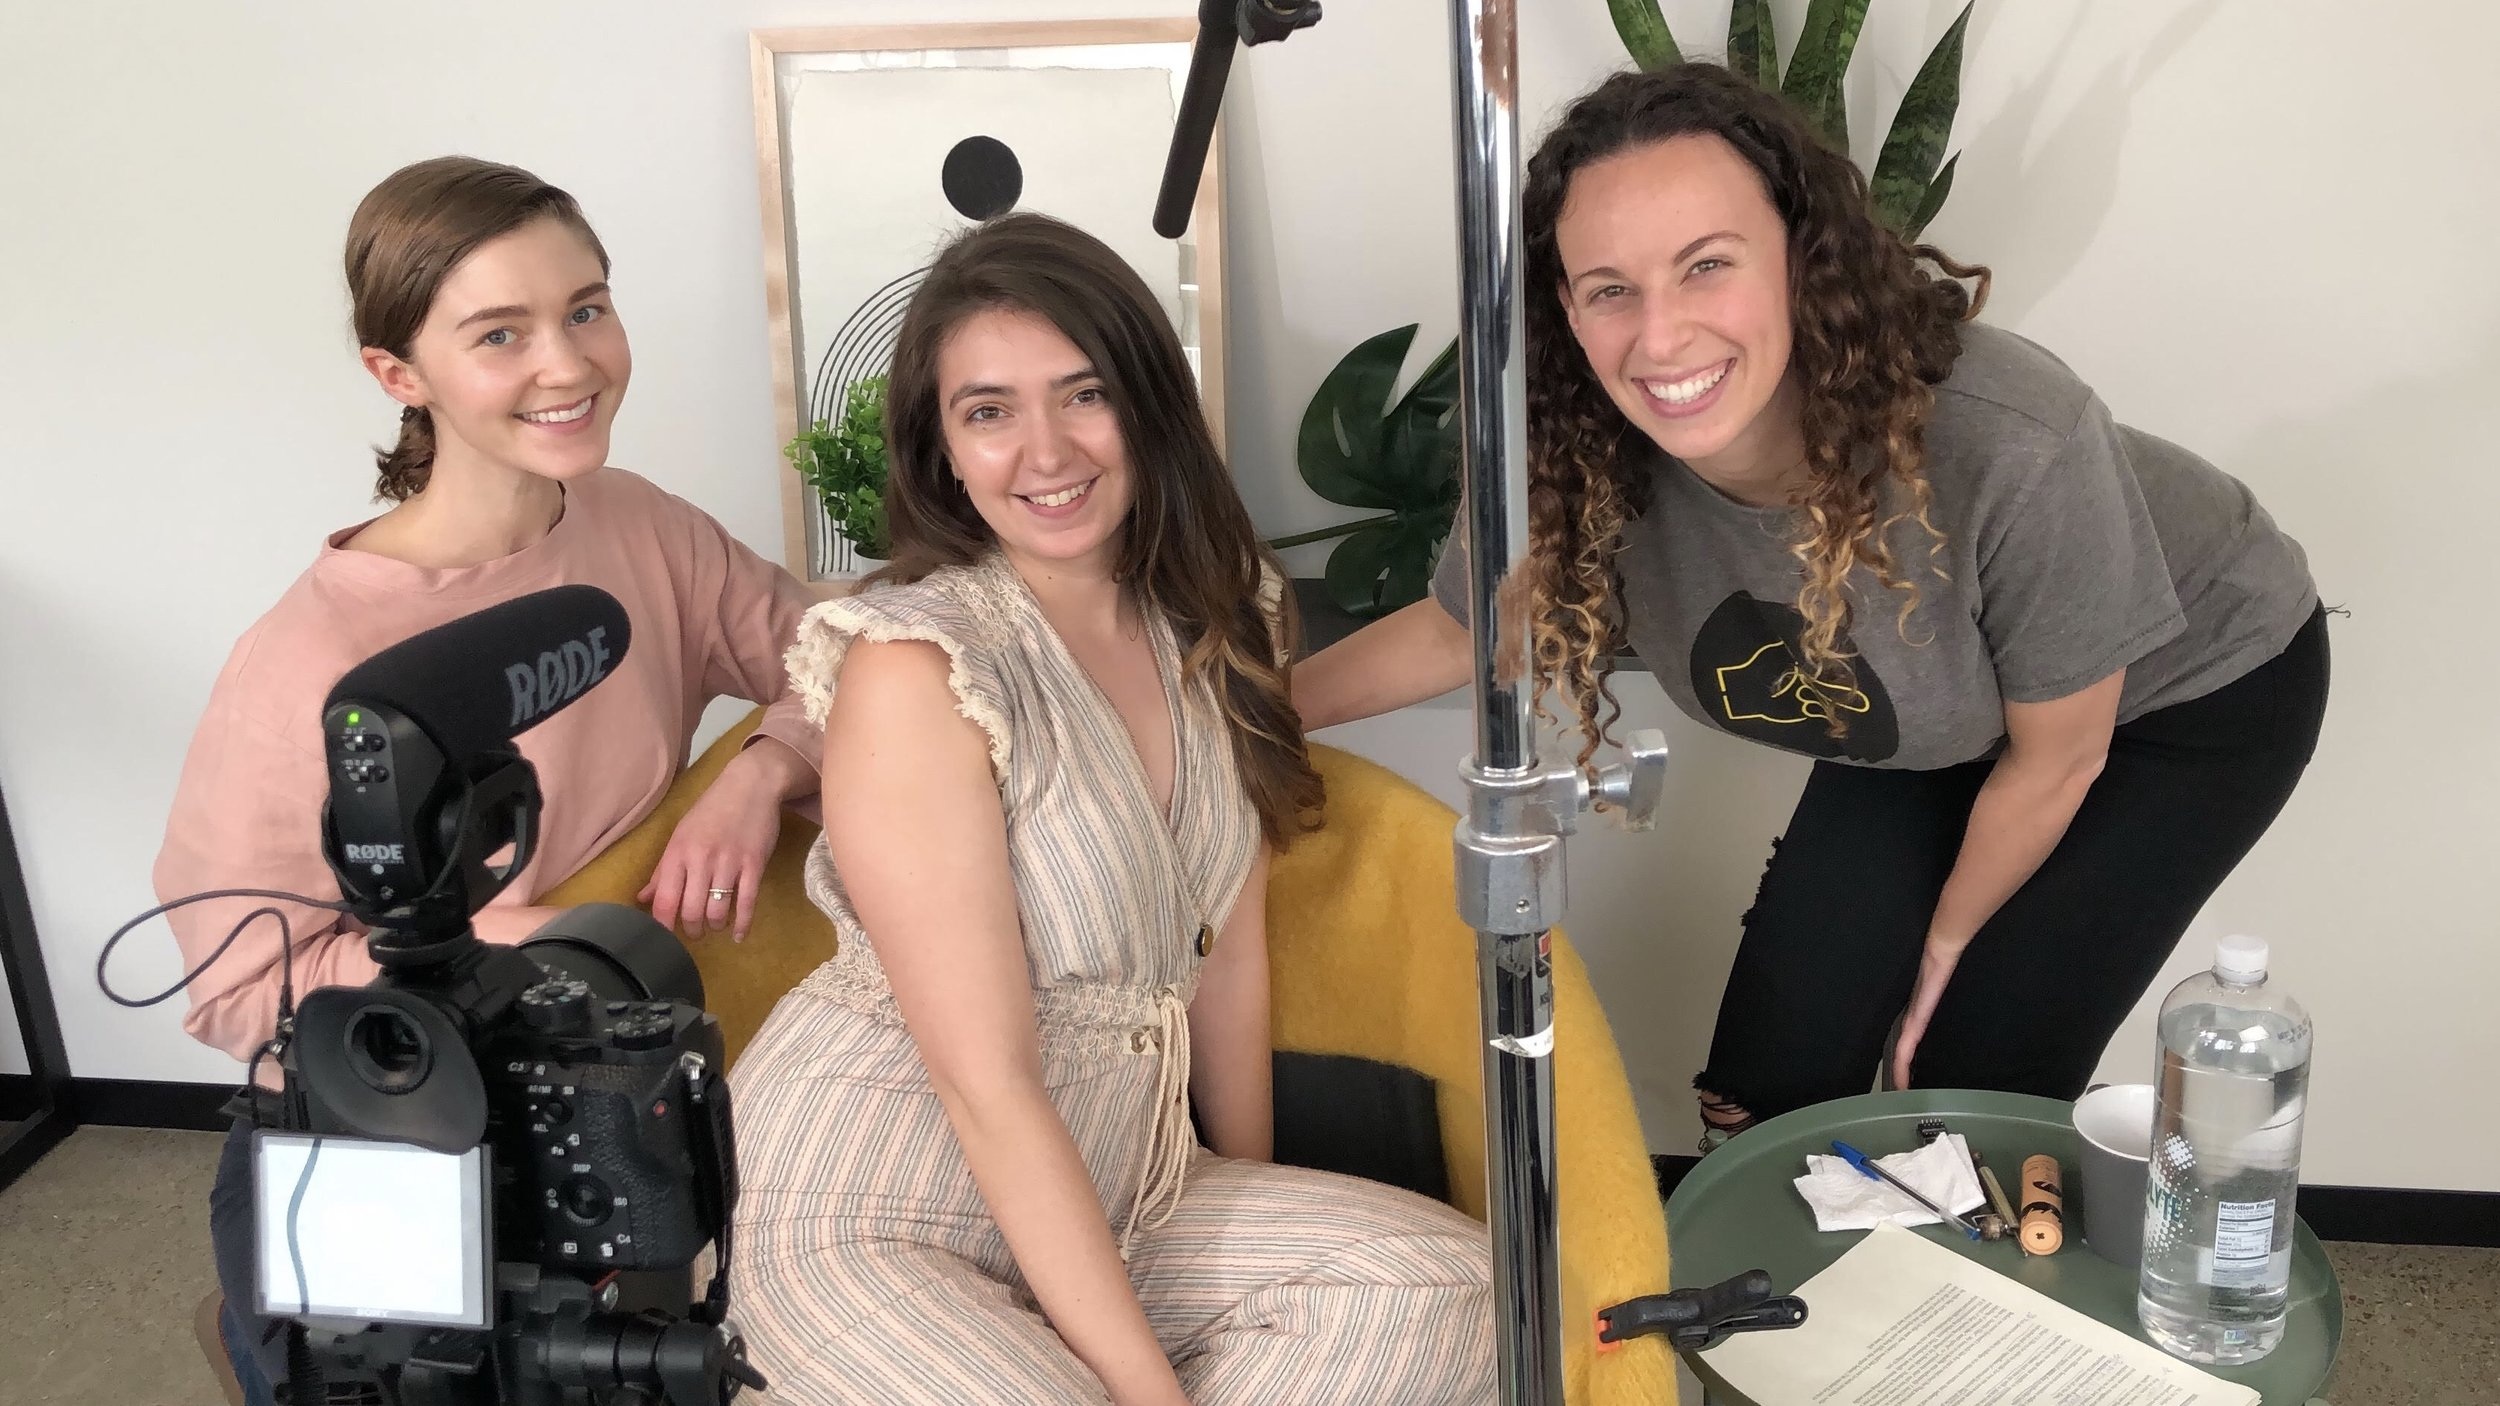 Amelia, myself, and Joanna while filming my course videos